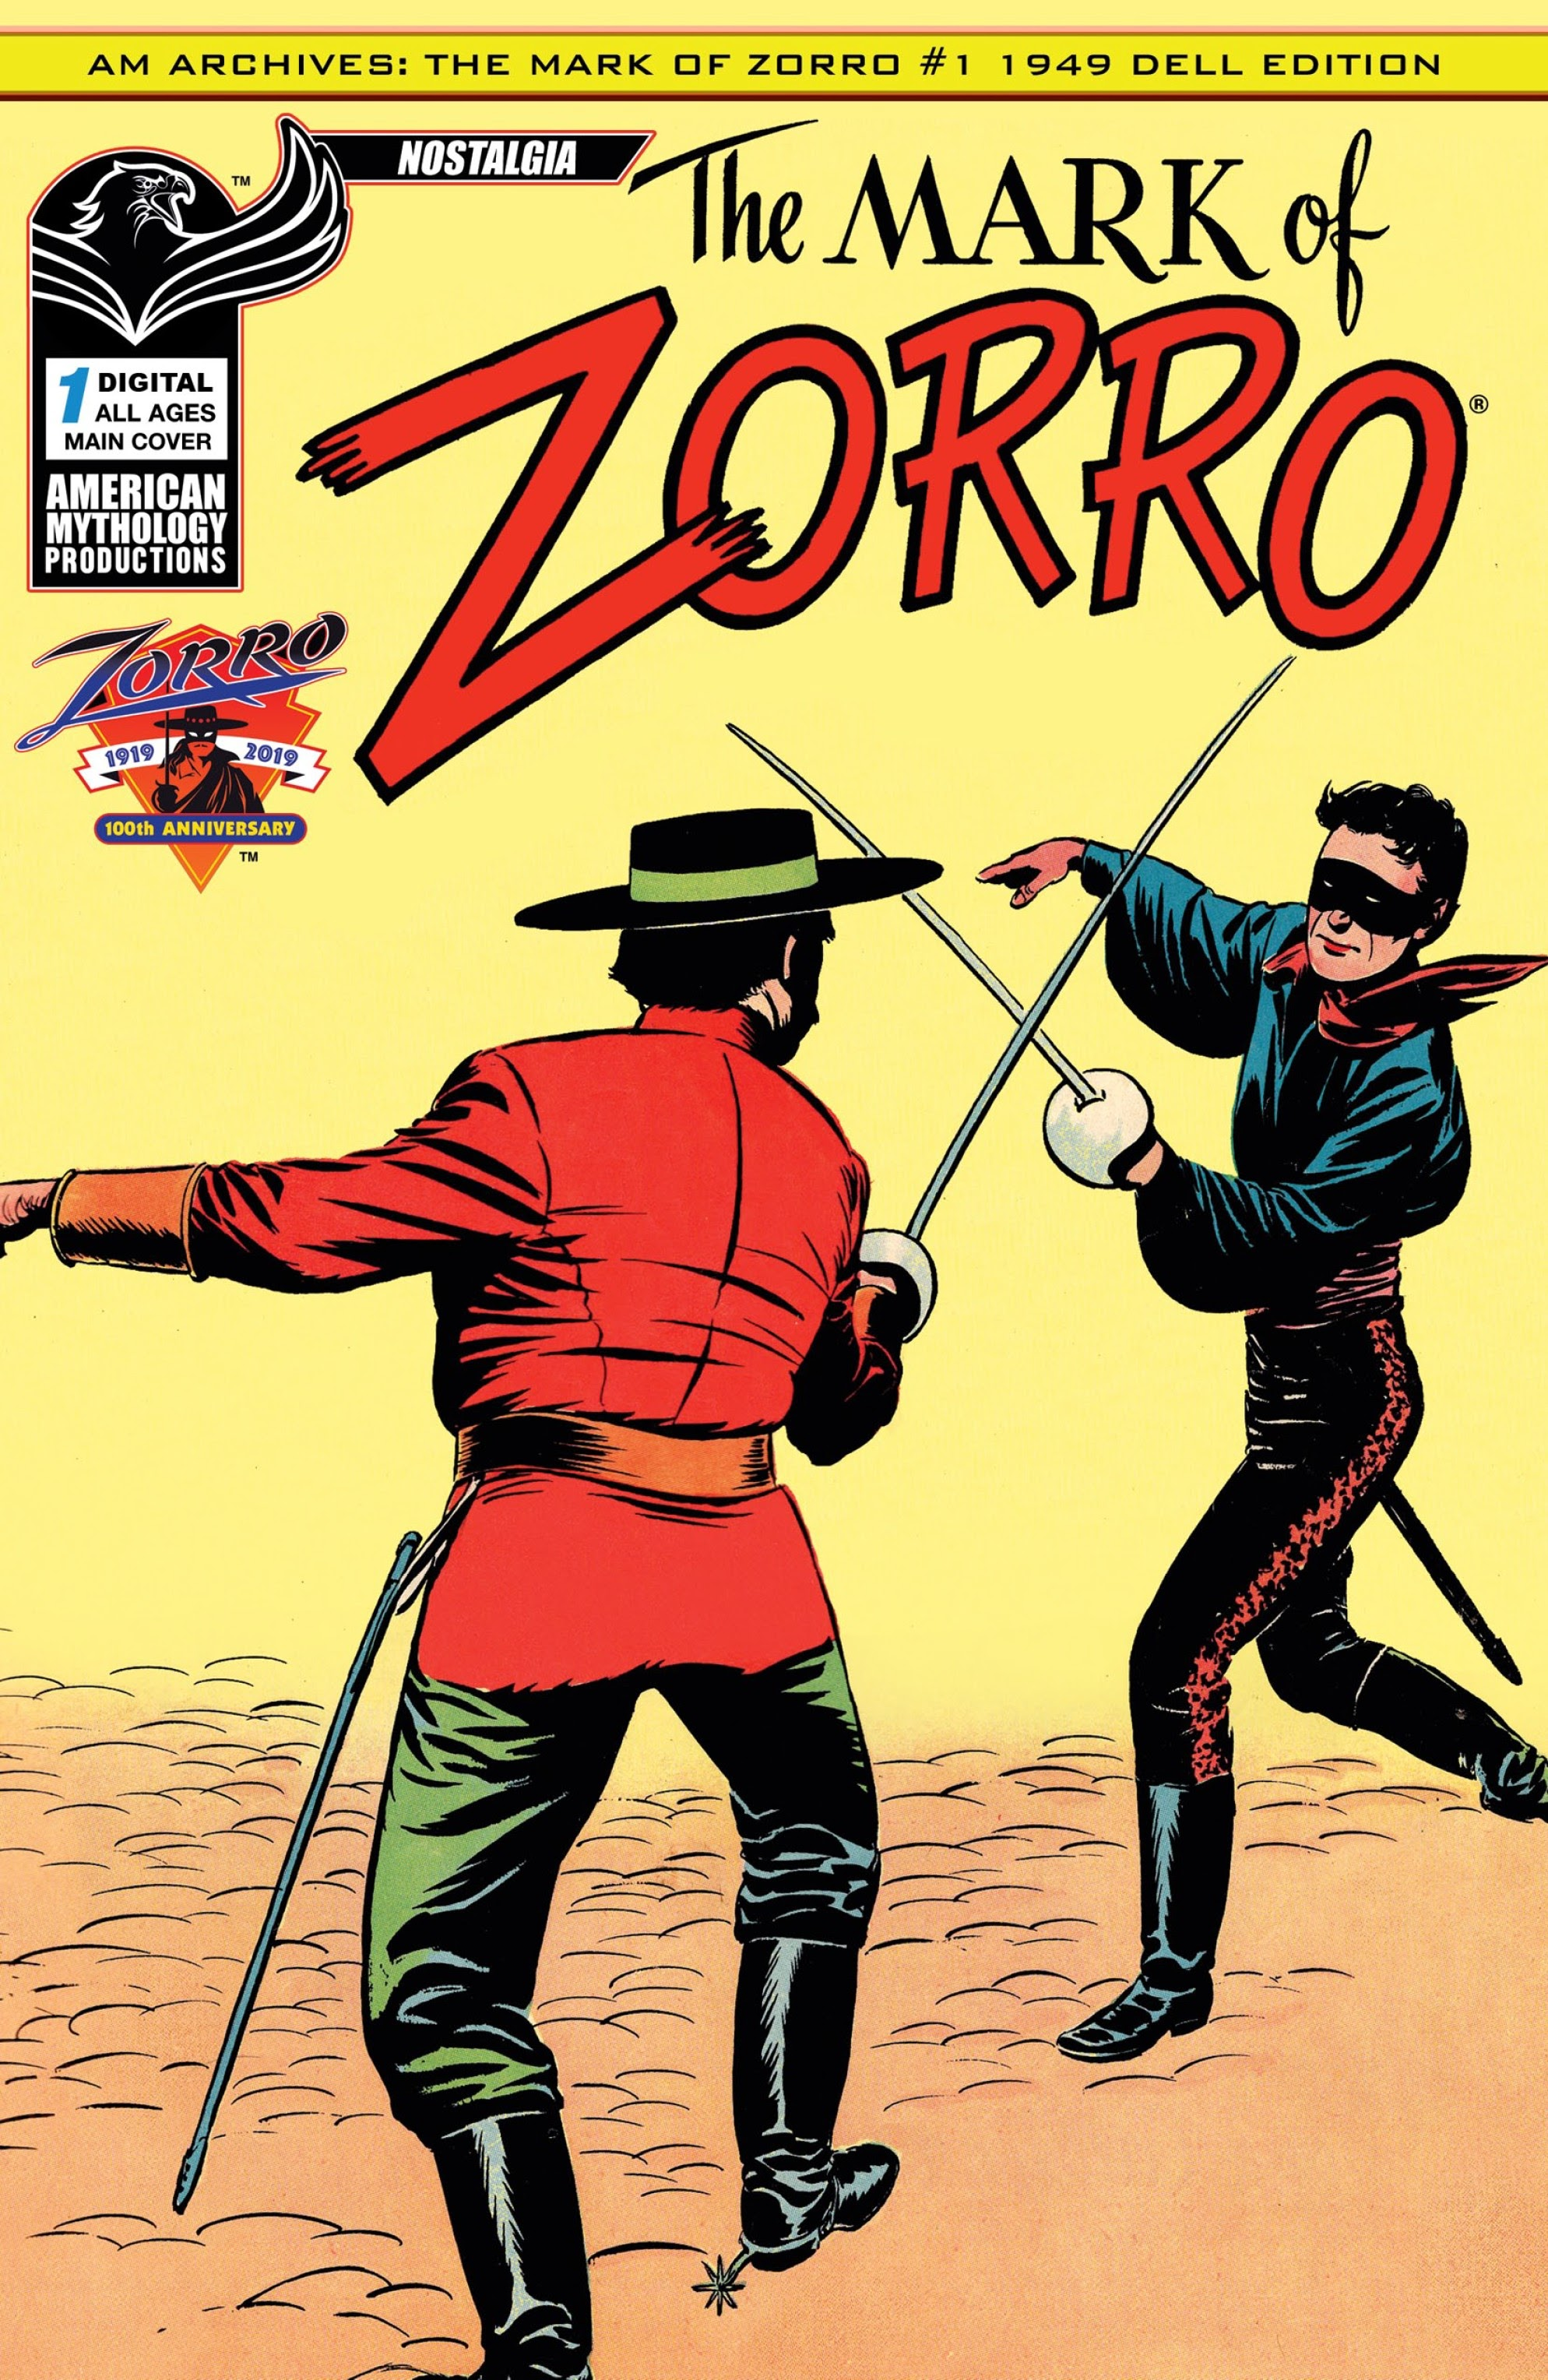 AM Archives: The Mark of Zorro #1 1949 Dell Edition Full Page 1